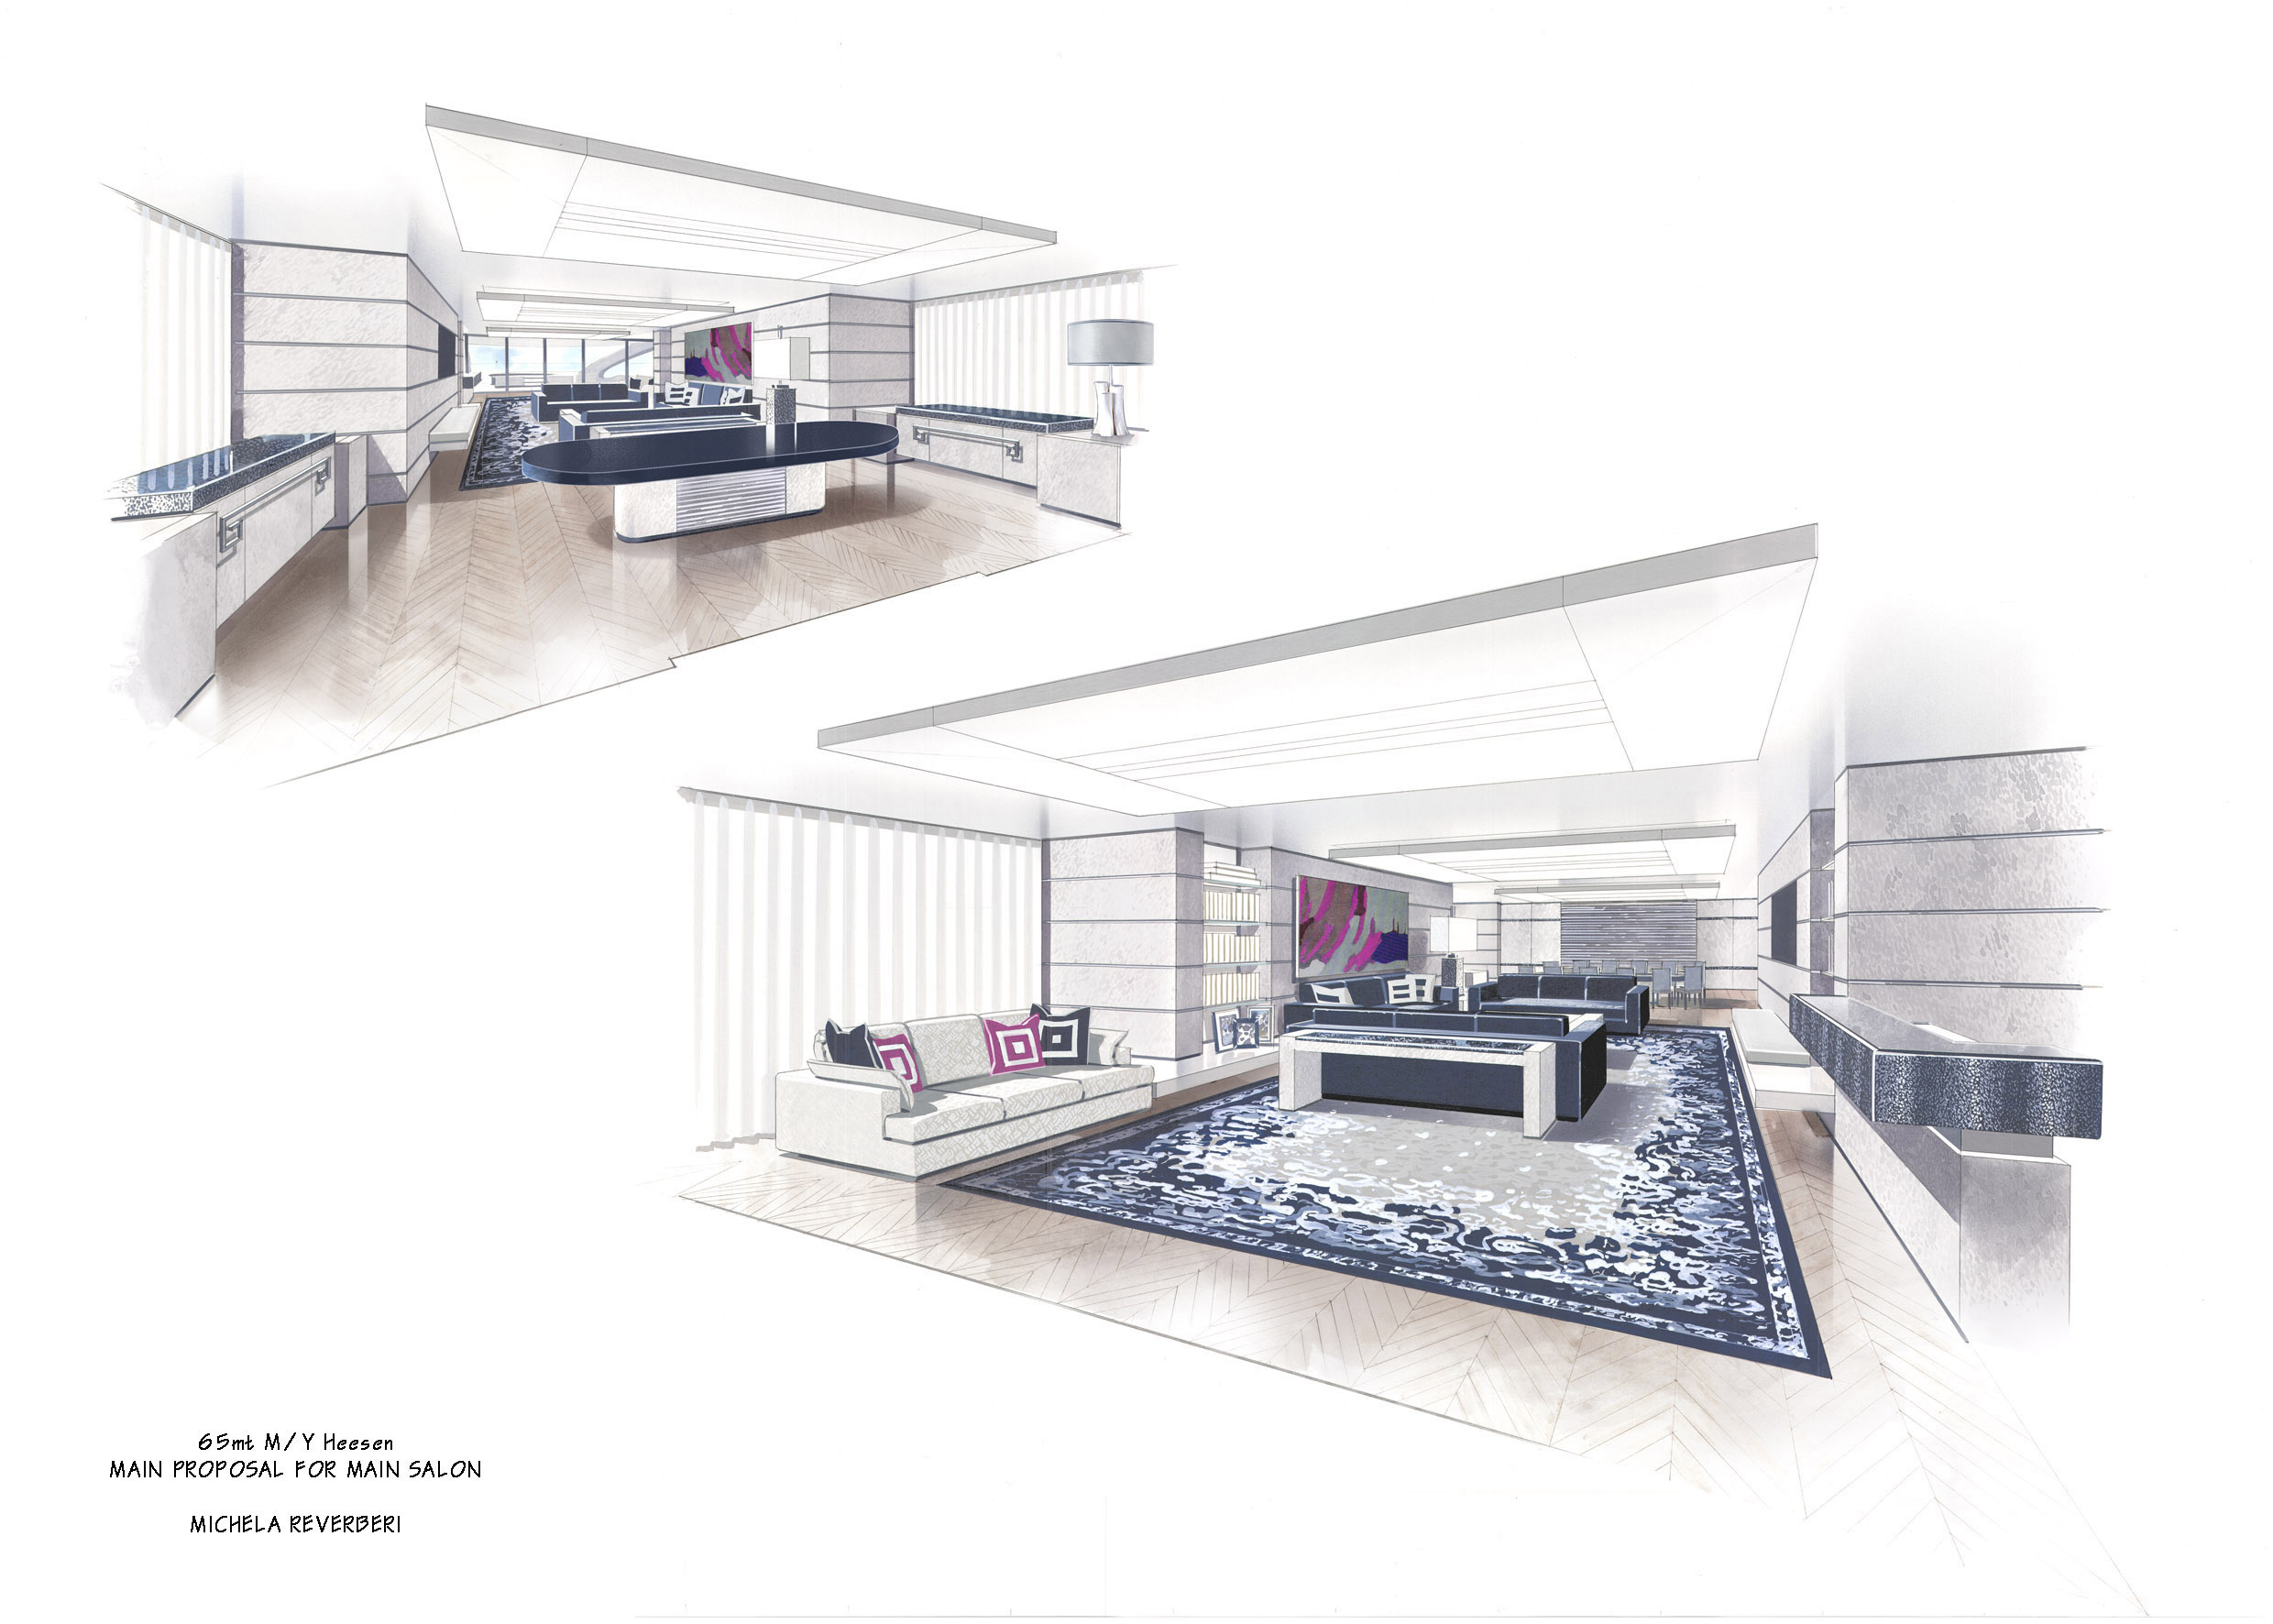 Michela Reverberi Designed Interior For The Motor Yacht Quinta Essentia By Heesen Rendering